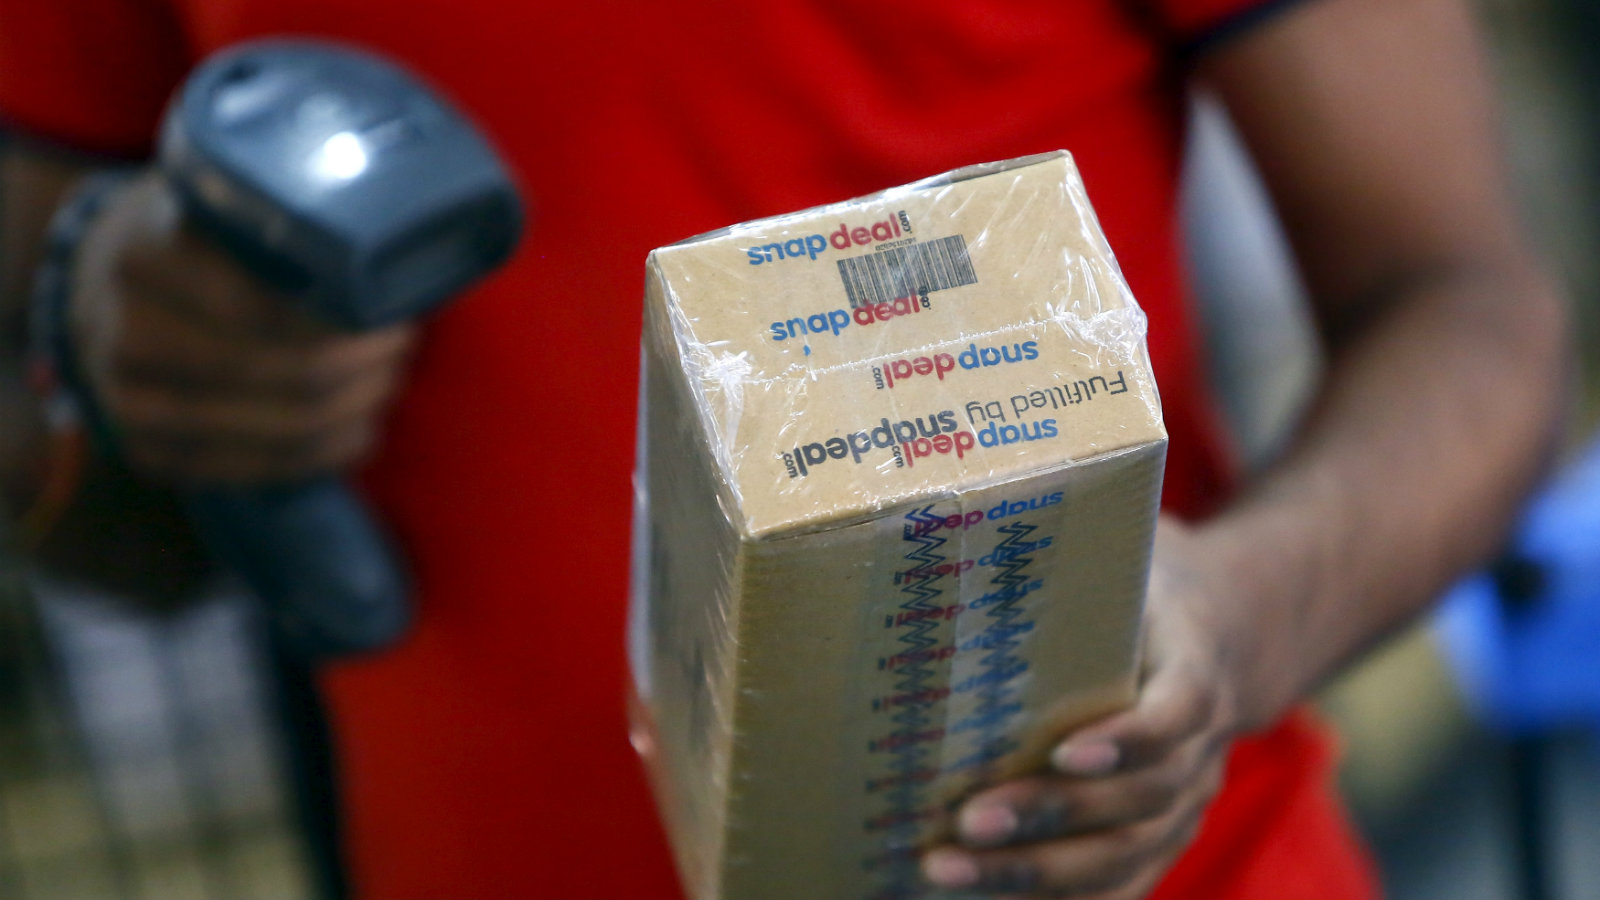 A worker of Indian e-commerce company Snapdeal.com scans barcode on a box after it was packed at the company's warehouse in New Delhi April 20, 2015. After losing top engineering talent for years to America's tech heartland of Silicon Valley, India is luring them back as an e-commerce boom sparks a thriving start-up culture, unprecedented pay, and perks including free healthcare for in-laws. Picture taken April 20, 2015. To match INDIA-ECOMMERCE/WORKERS.